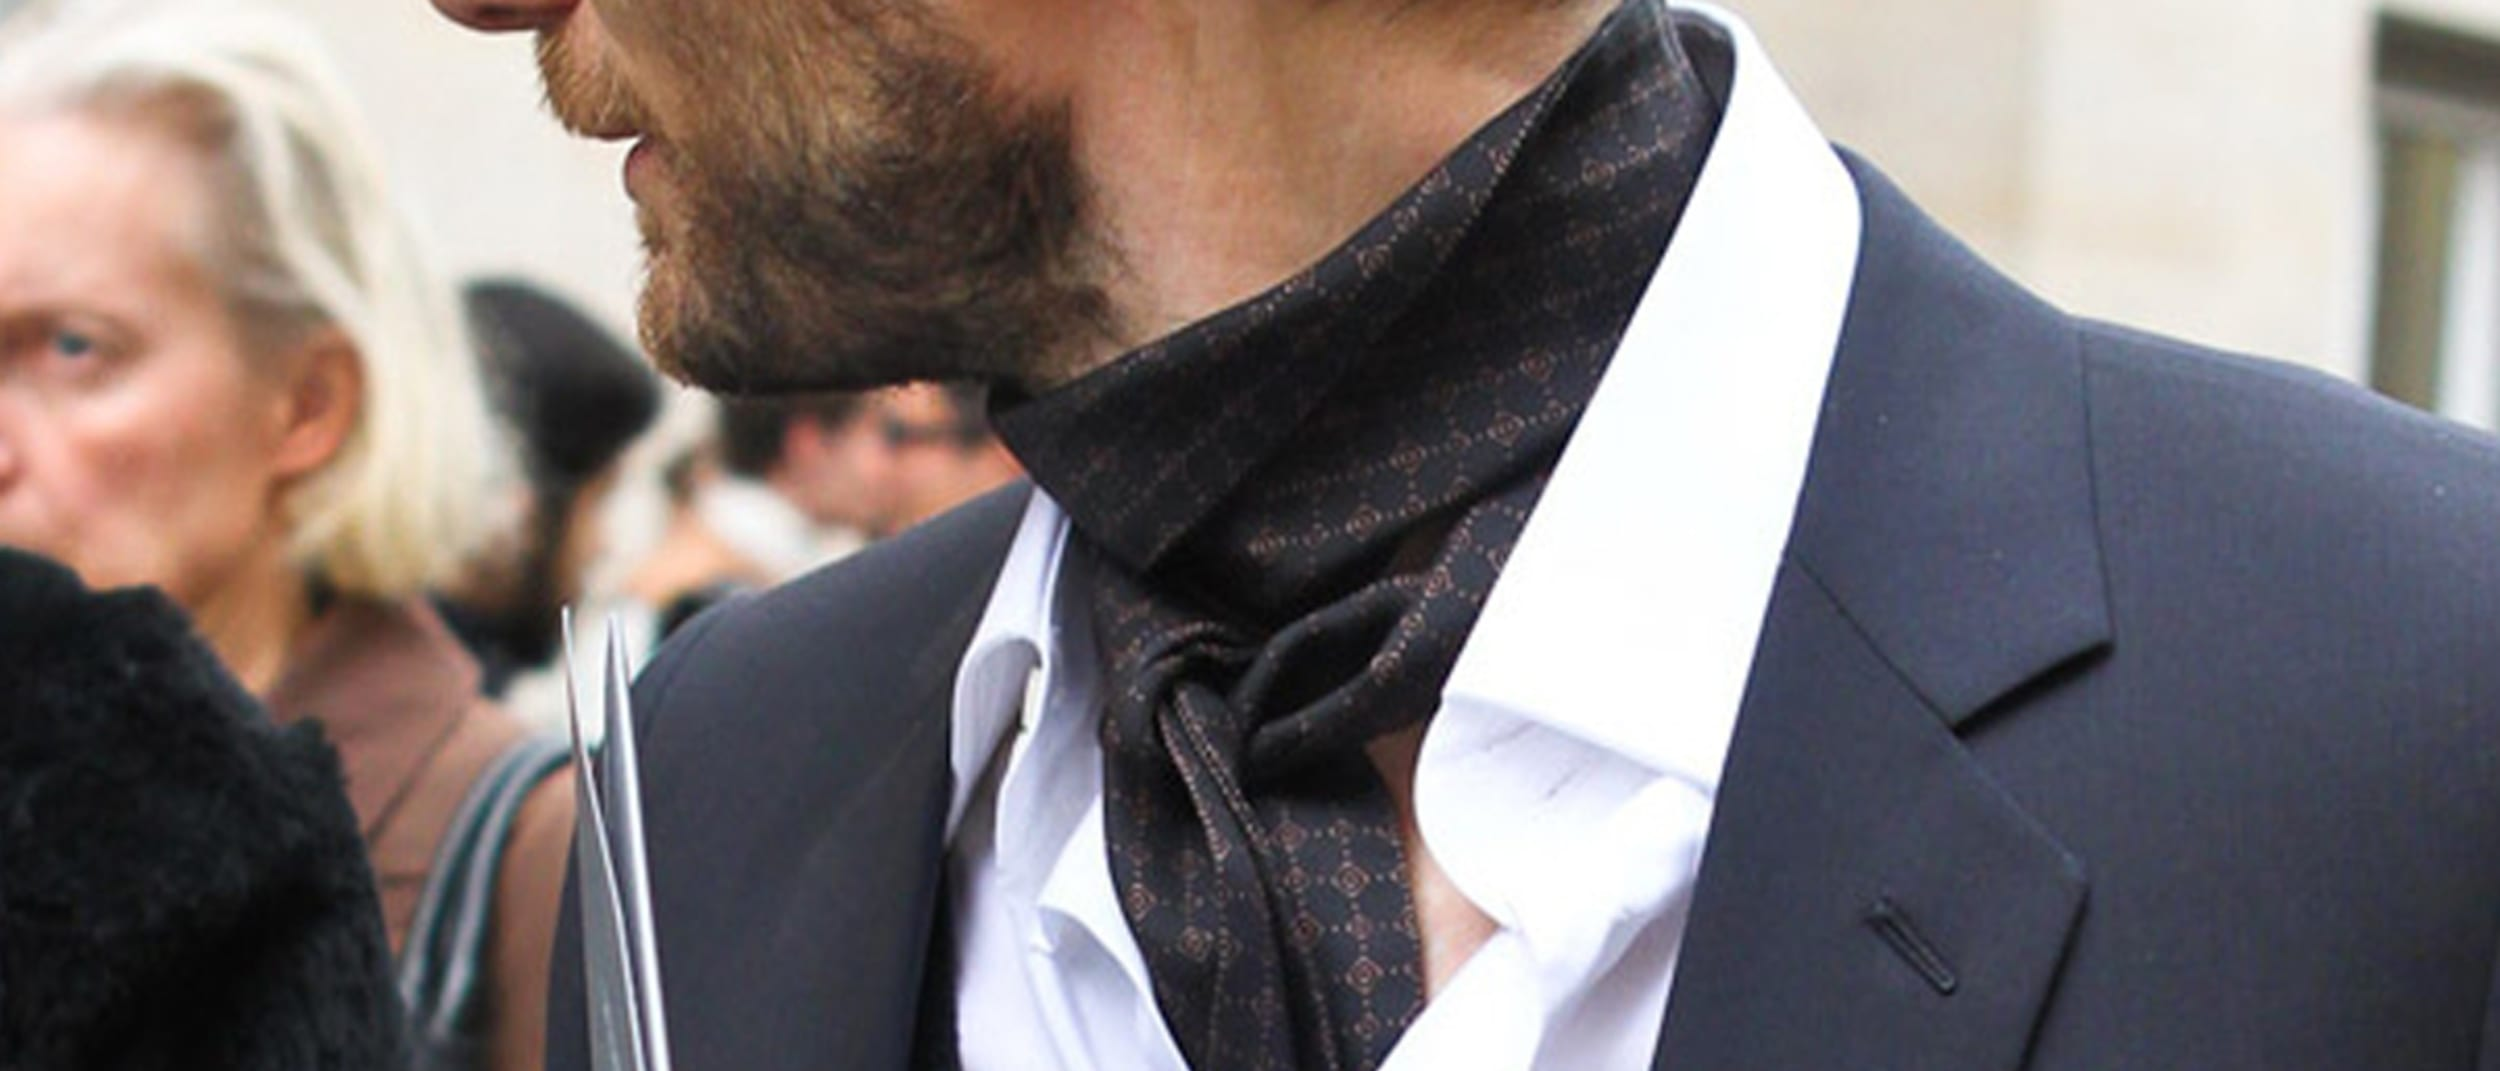 Reuben F Scarf: the cravat is making a style come-back